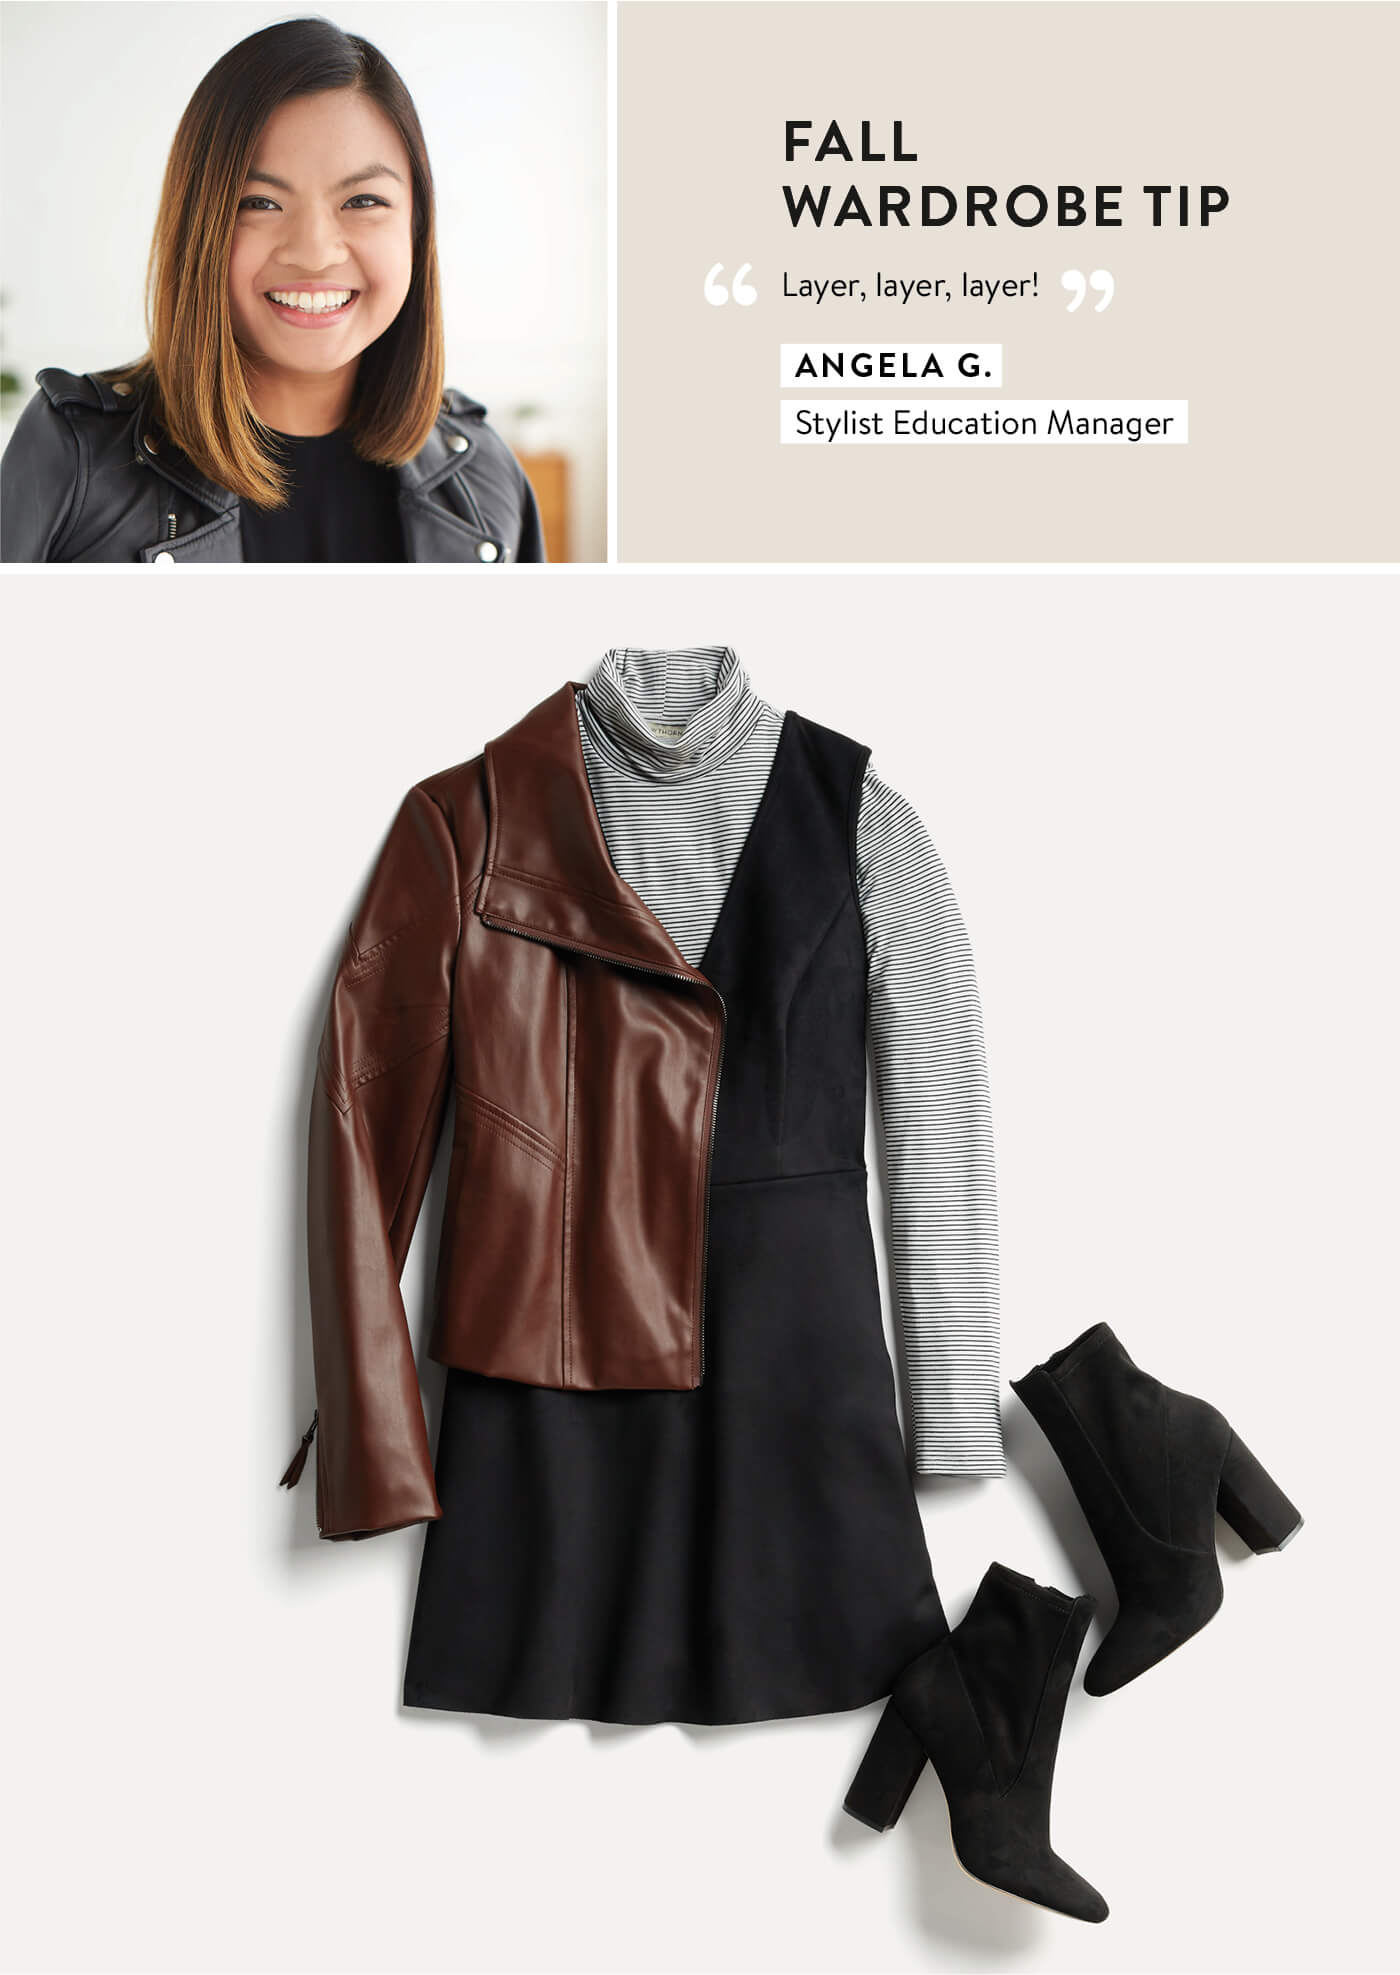 Stitch Fix Stylist Angela, moto jacket, turtleneck layered under dress